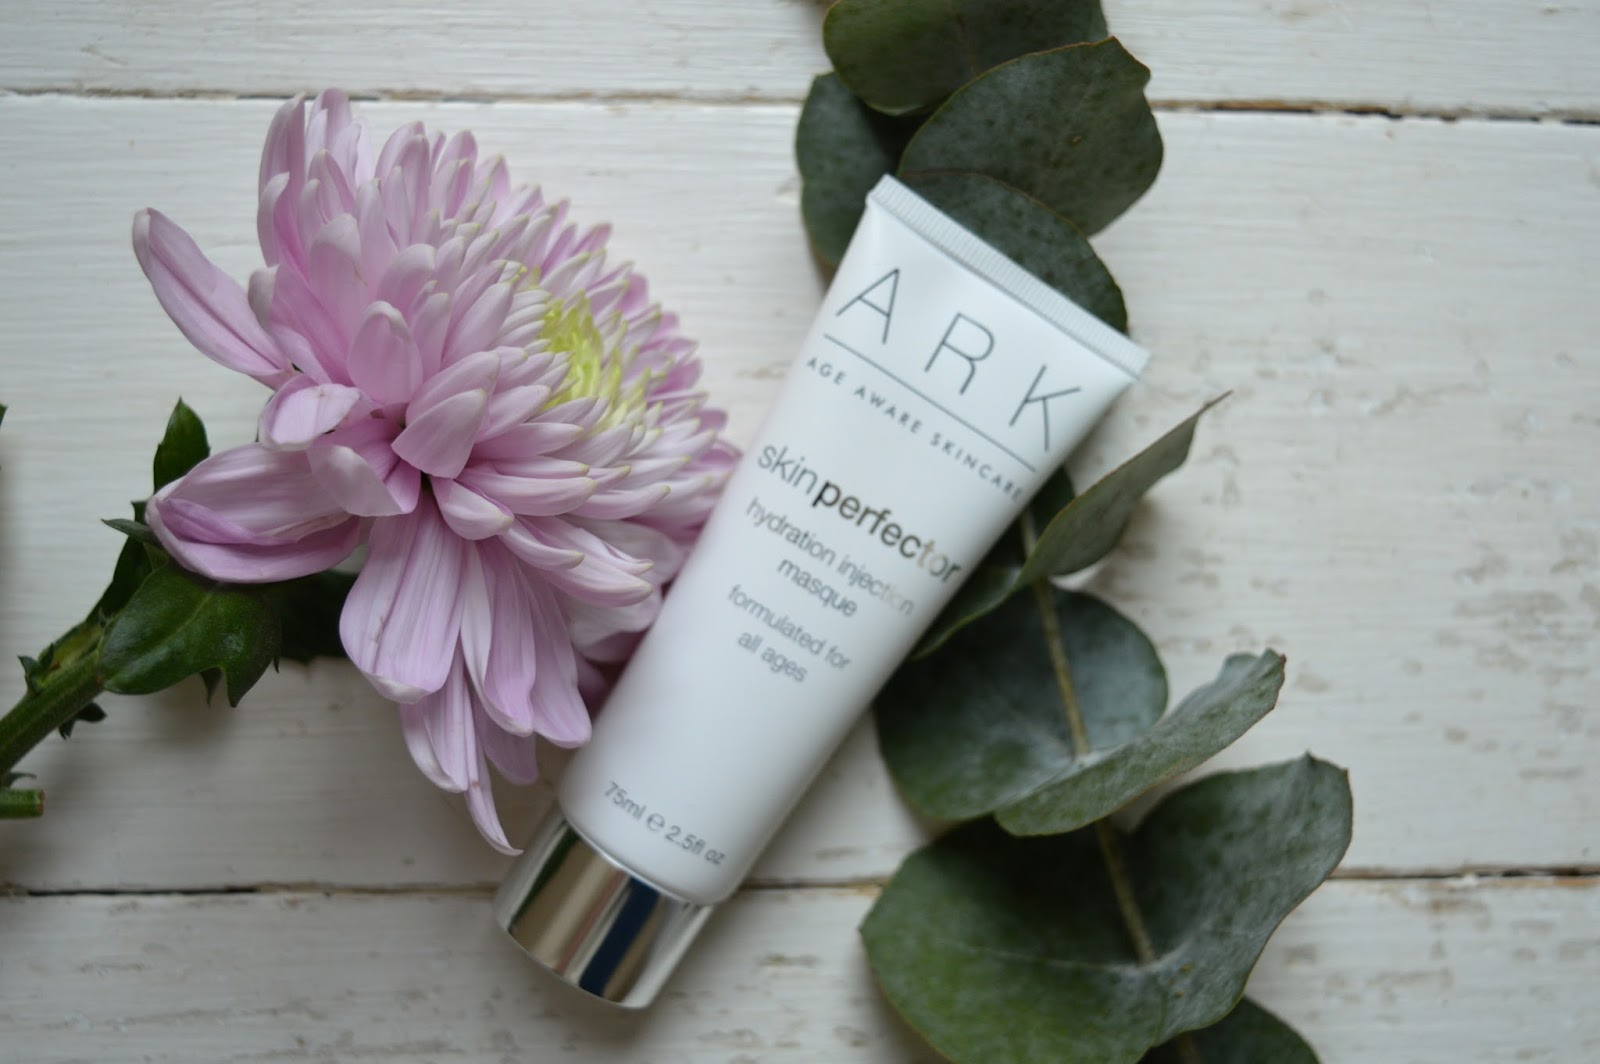 ARK Skincare Hydration Injection Masque review, Dalry Rose Blog, beauty bloggers, UK beauty blog